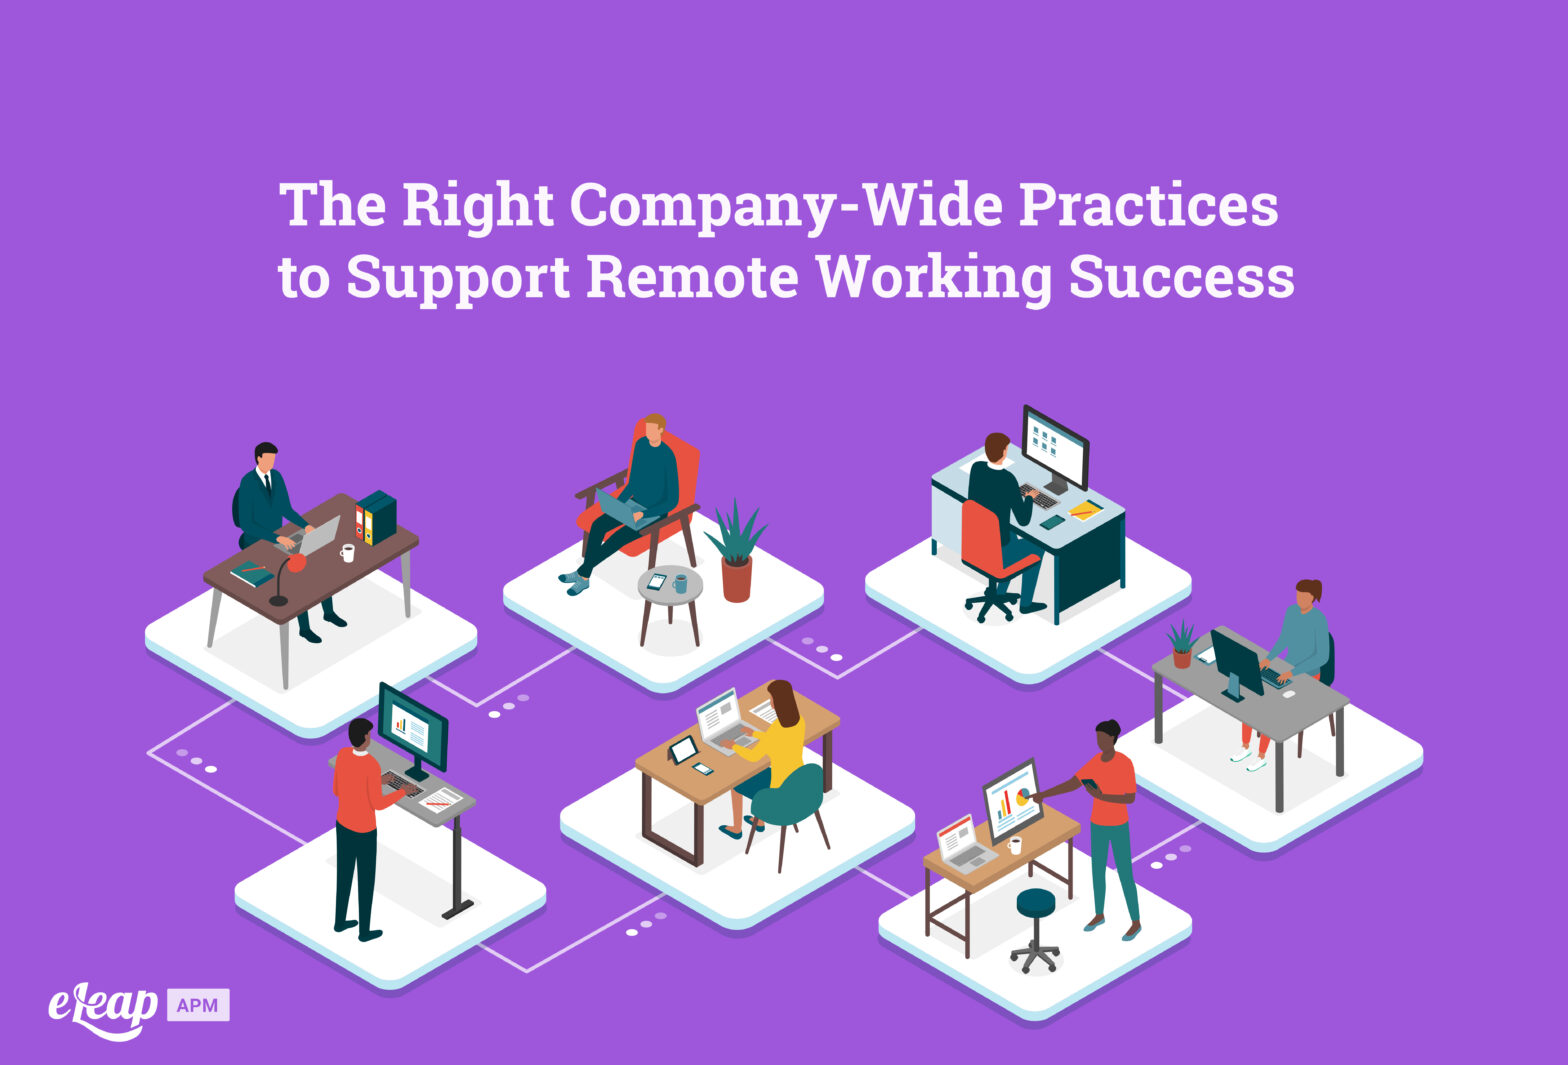 The Right Company-Wide Practices to Support Remote Working Success